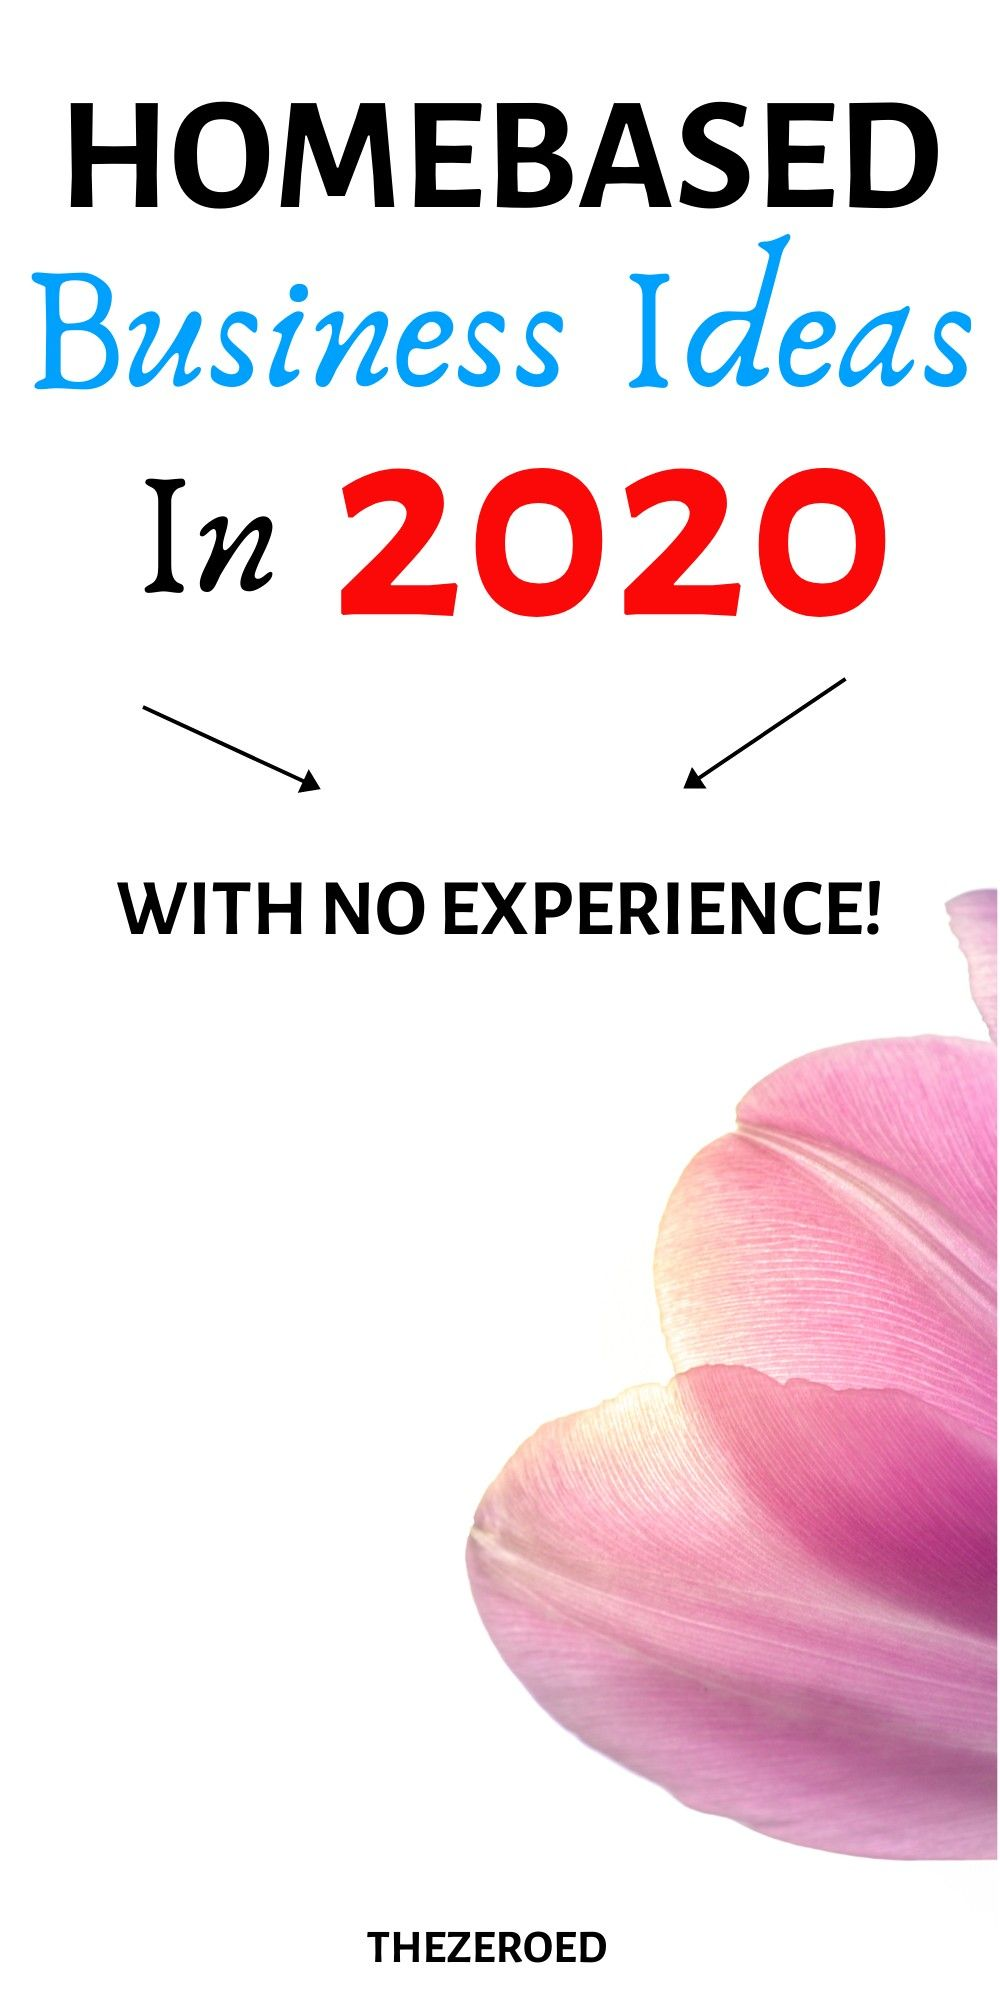 Homebased business ideas in 2020 with no experience in